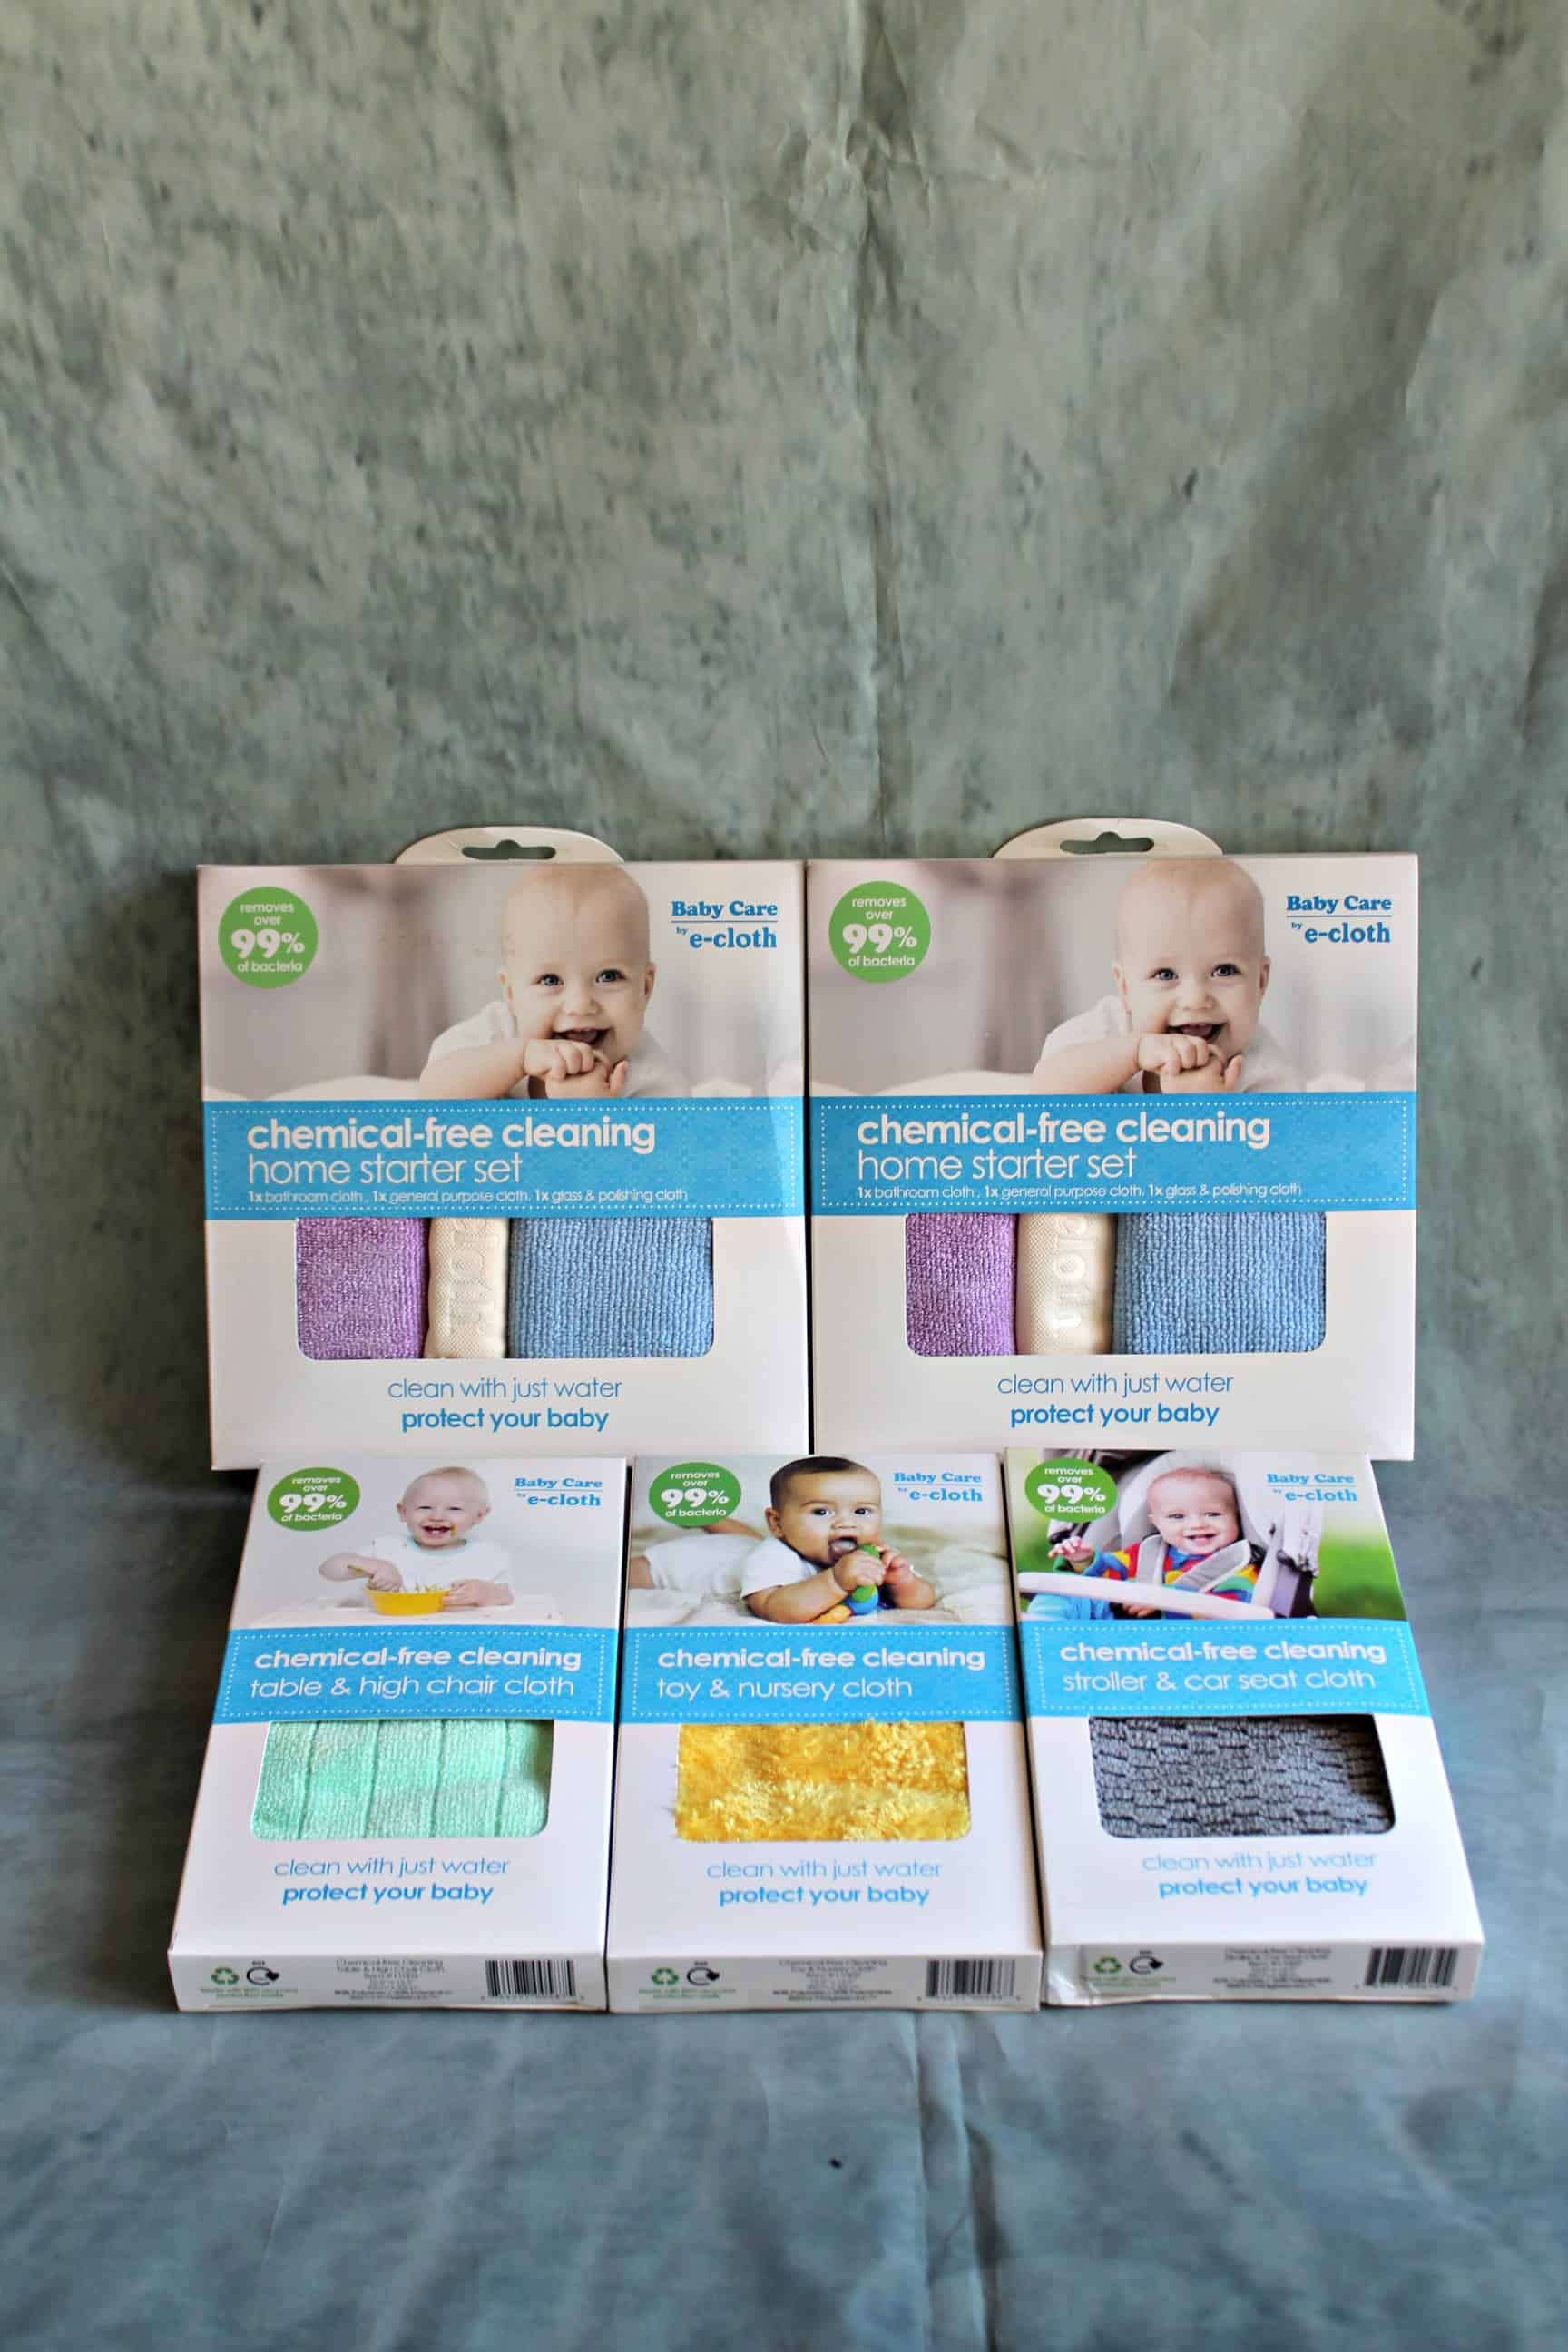 Smart Cleaning allows you to make your home safe and clean for the new baby